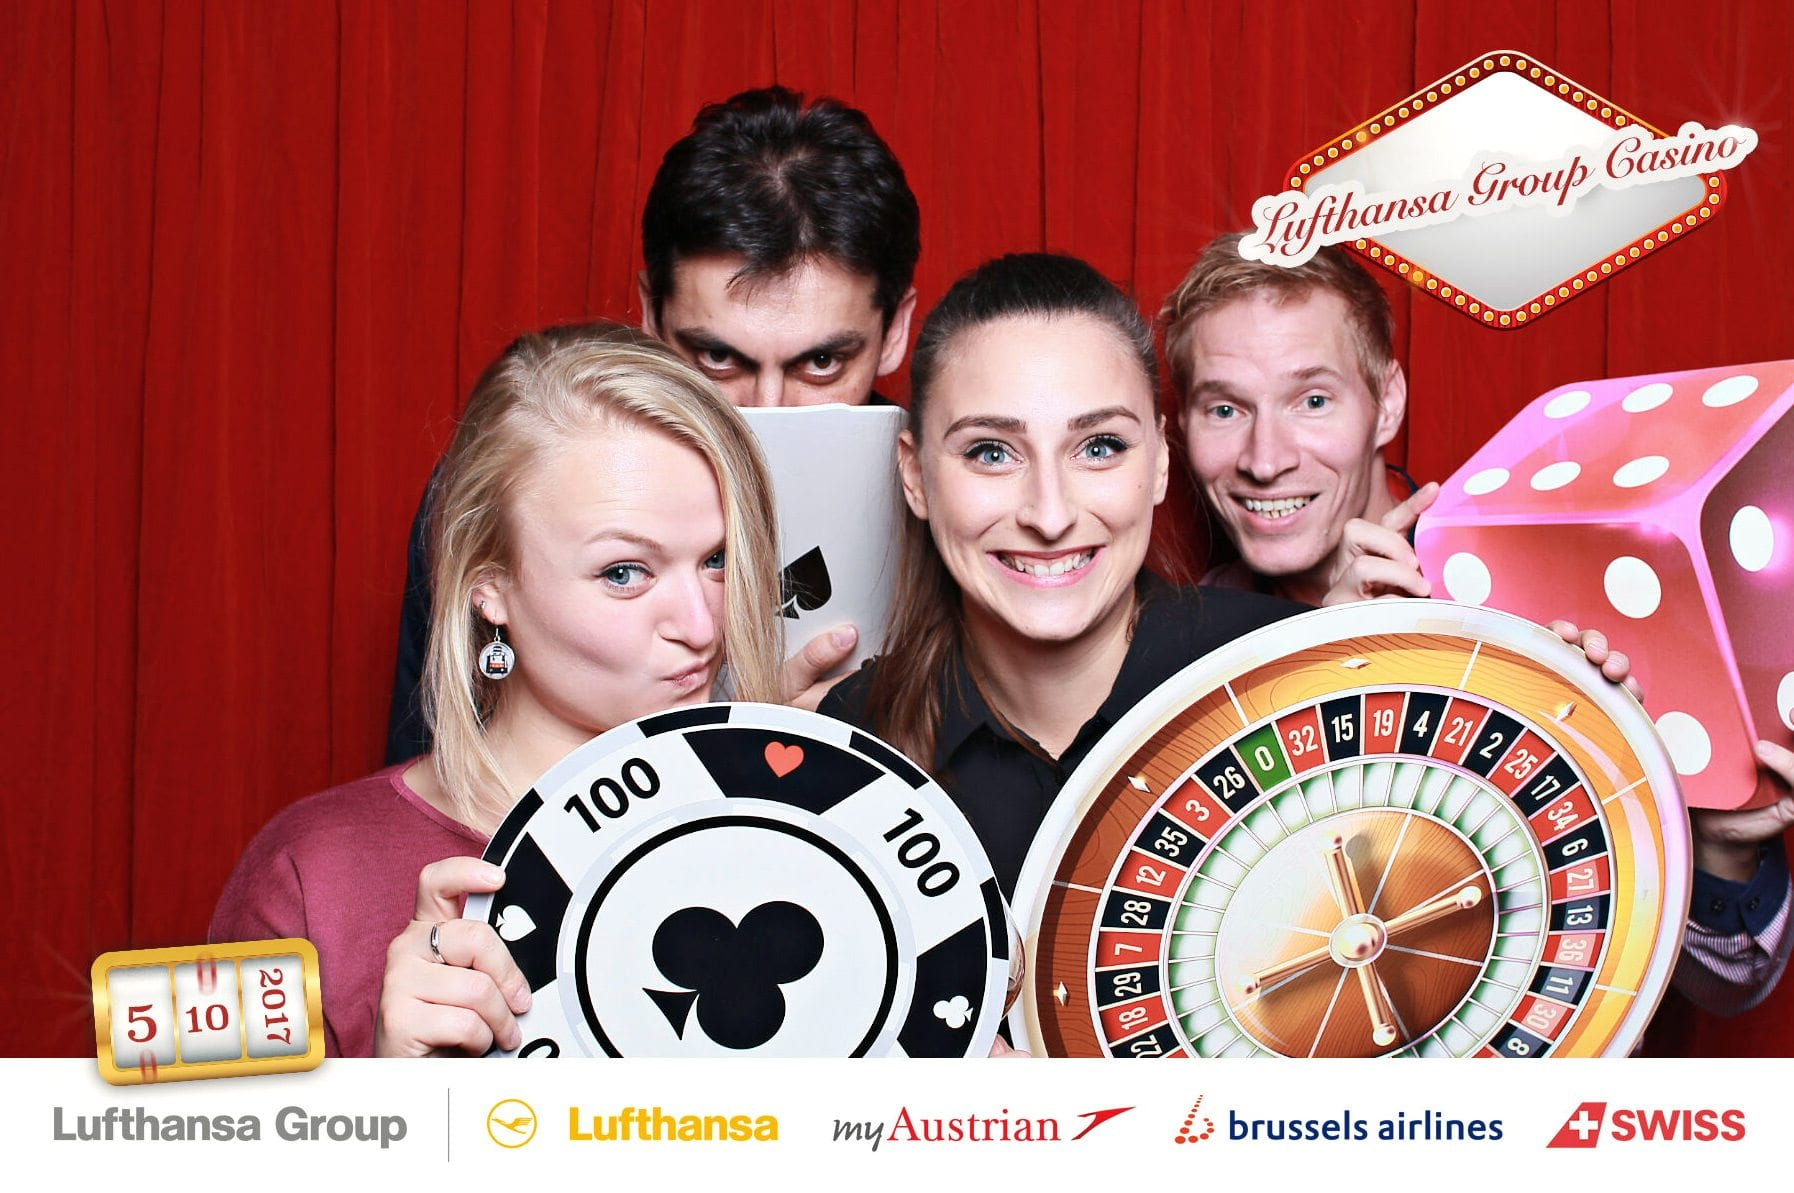 fotokoutek-lufthansa-group-casino-5-10-2017-323084